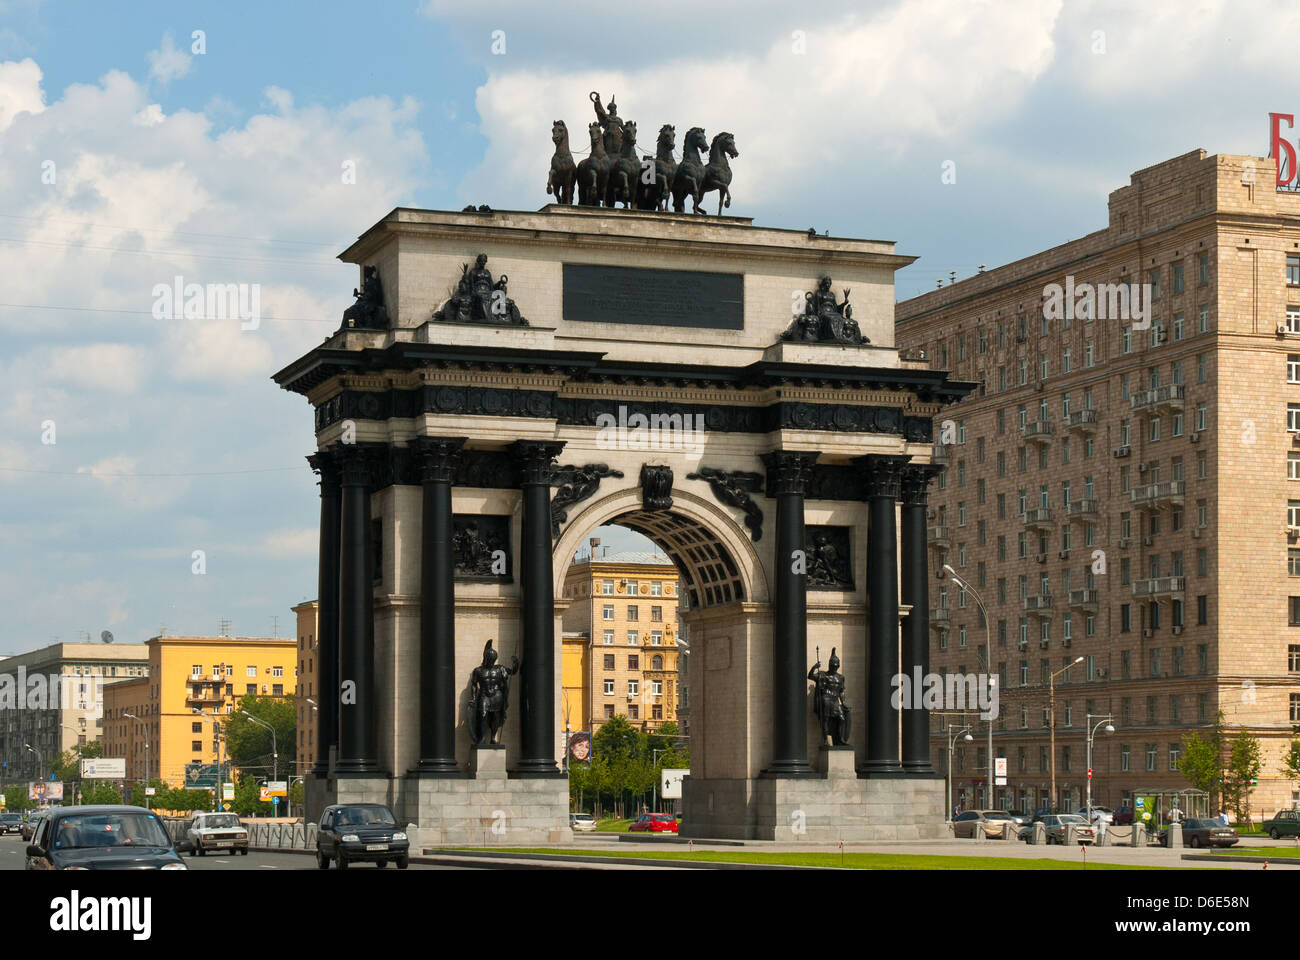 Triumphal Arch, Victory Square, Moscow, Russia - Stock Image